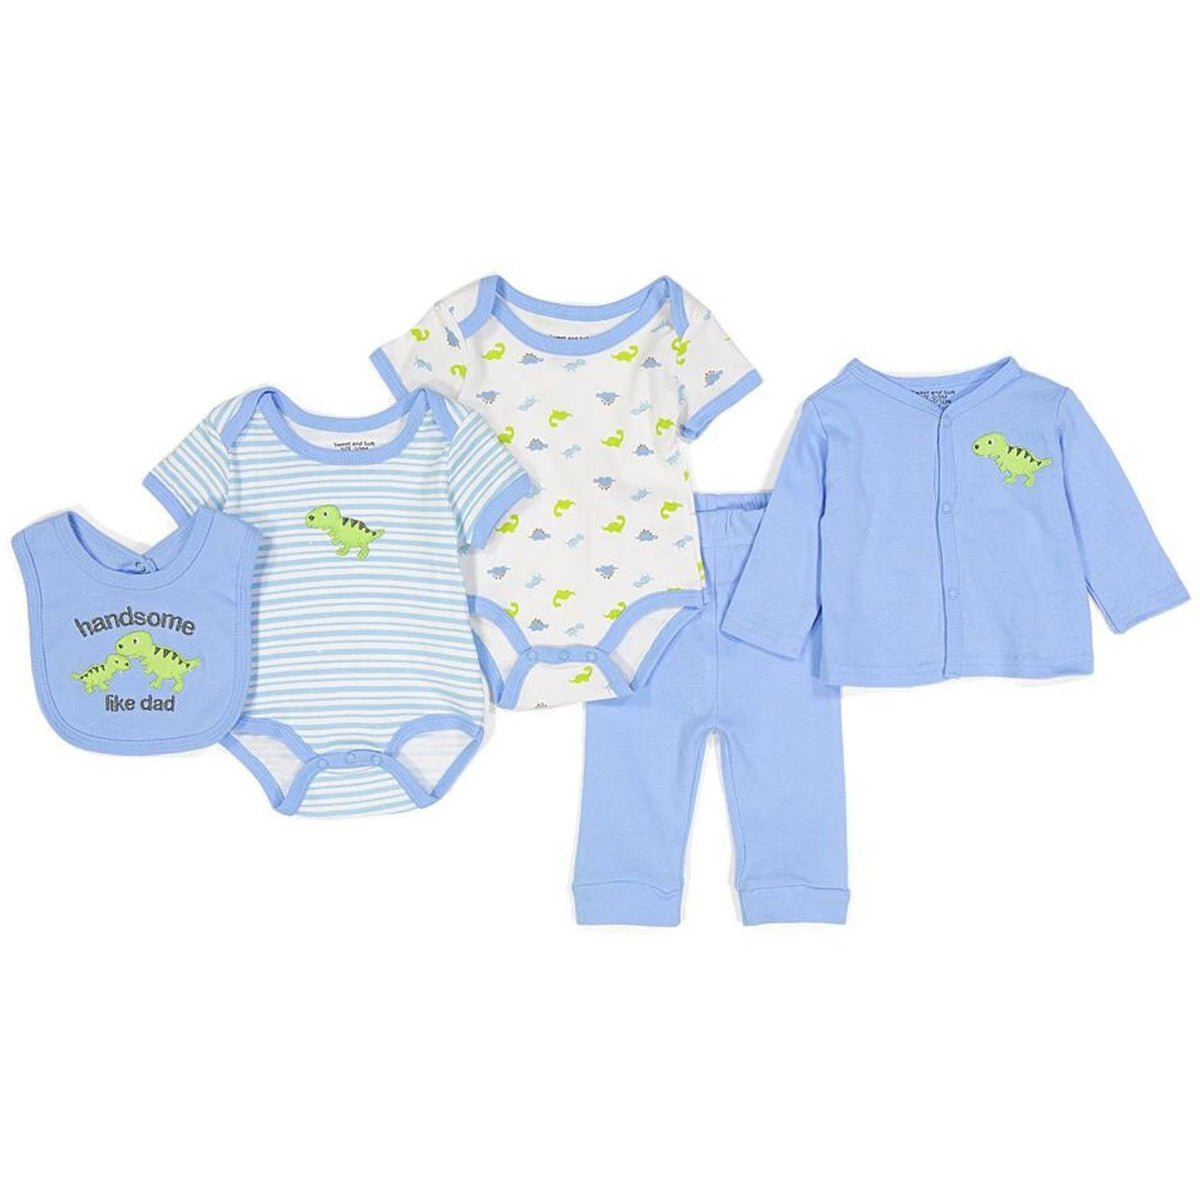 Sweet Amp Soft 5 Piece Baby Boy Set The Cope